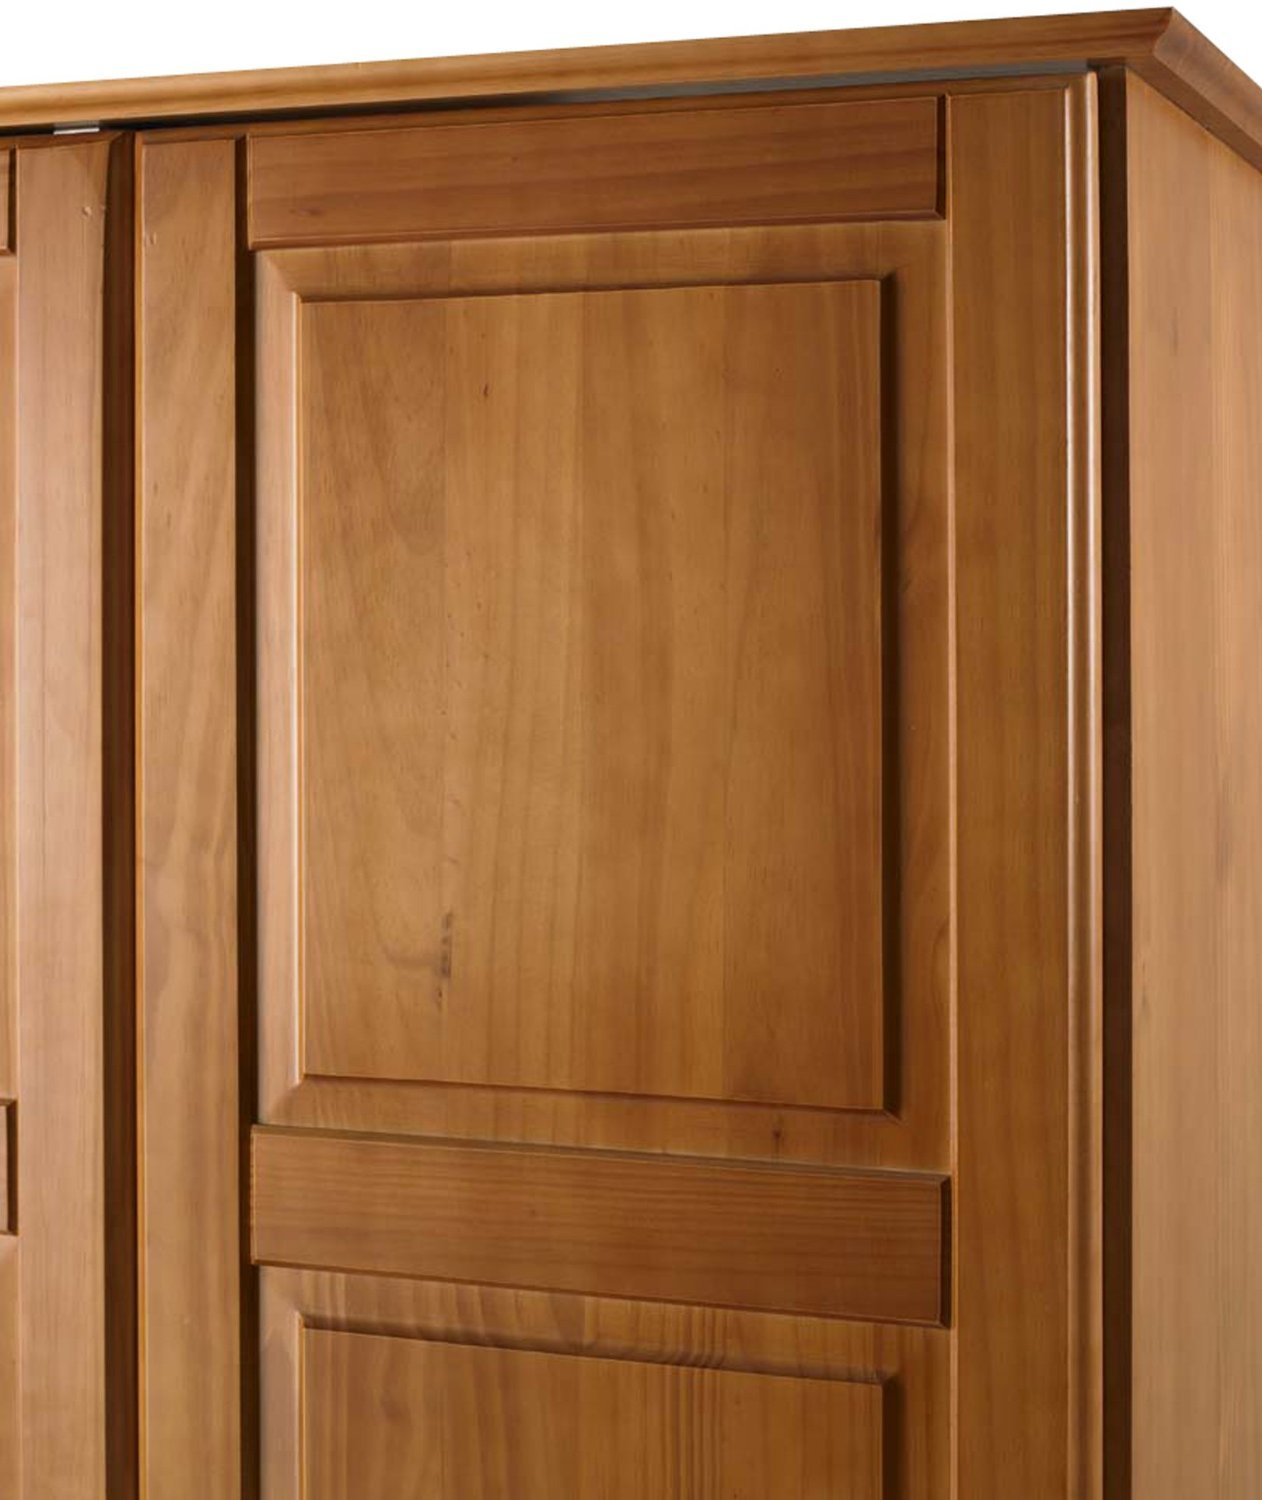 Solid wood universal wardrobe armoire closet by palace